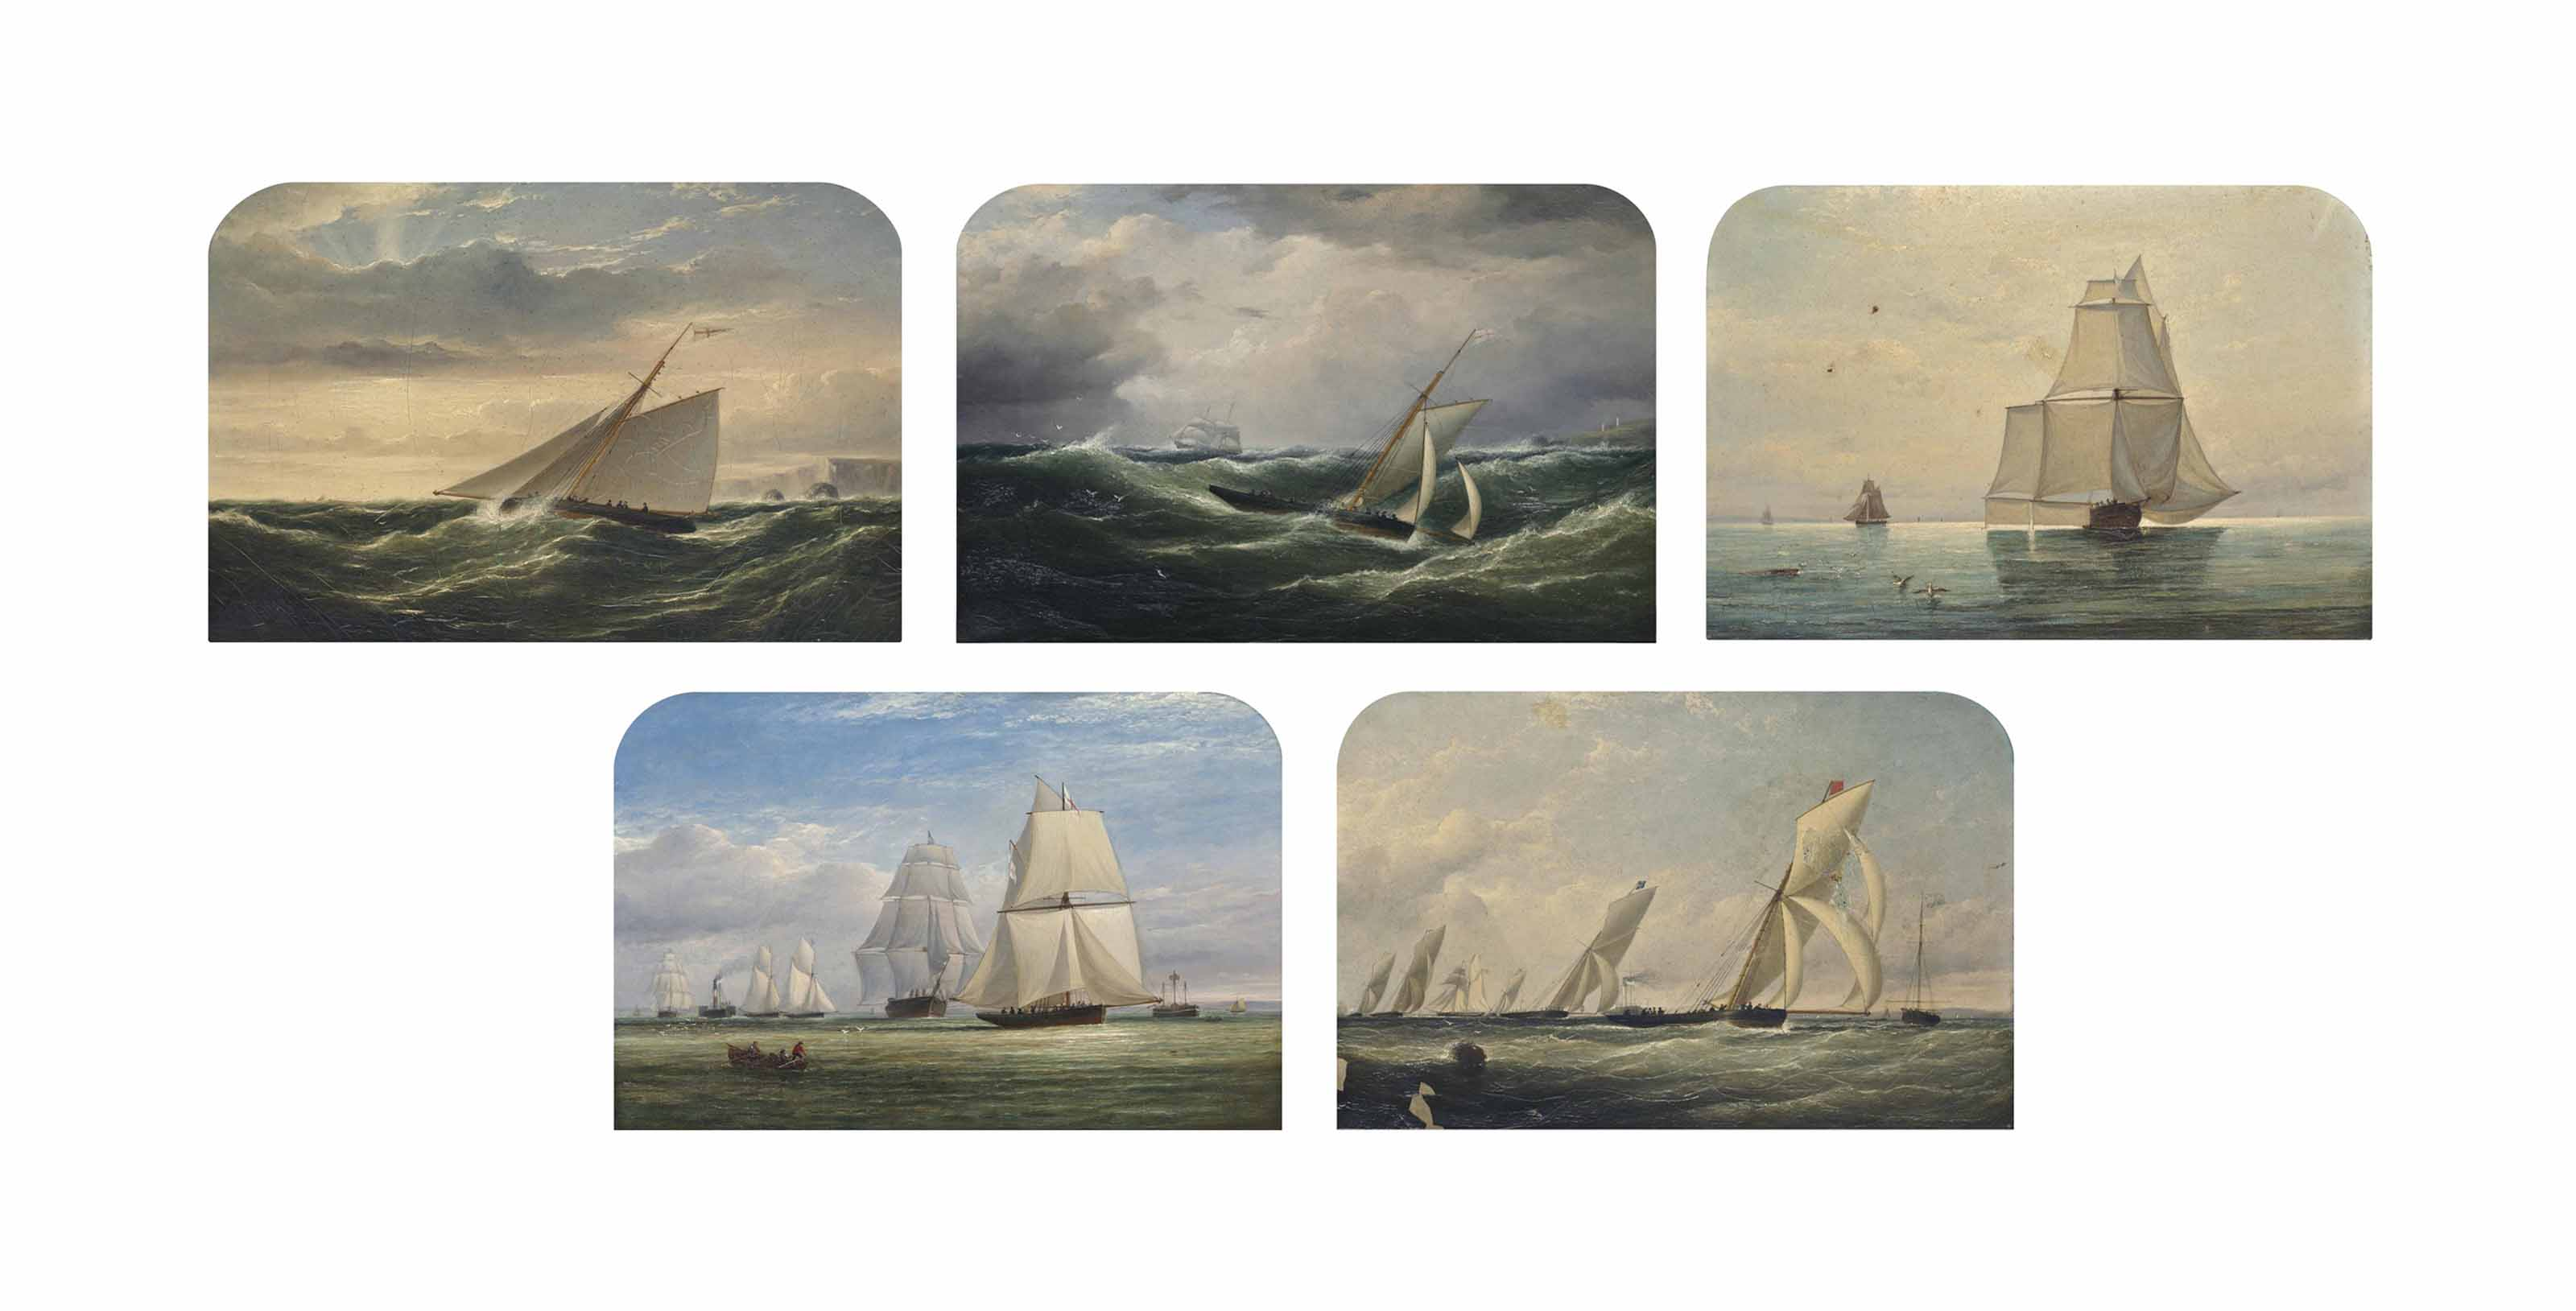 A series of five paintings depicting a racing cutter of the Royal Yacht Squadron competing at the Royal Mersey Regatta and on passage: Reefed-down as she heads for the Mersey off the North Anglesey coast; Running before a following wind off Carmel Head, Anglesey, following her departure from the Mersey; Racing downwind and goose-winged with every feather spread; Leading the fleet past the North West Lightship in Liverpool Bay on a downwind leg; and Leading her competitors across the finish line with the mark boat off her port side (all illustrated)